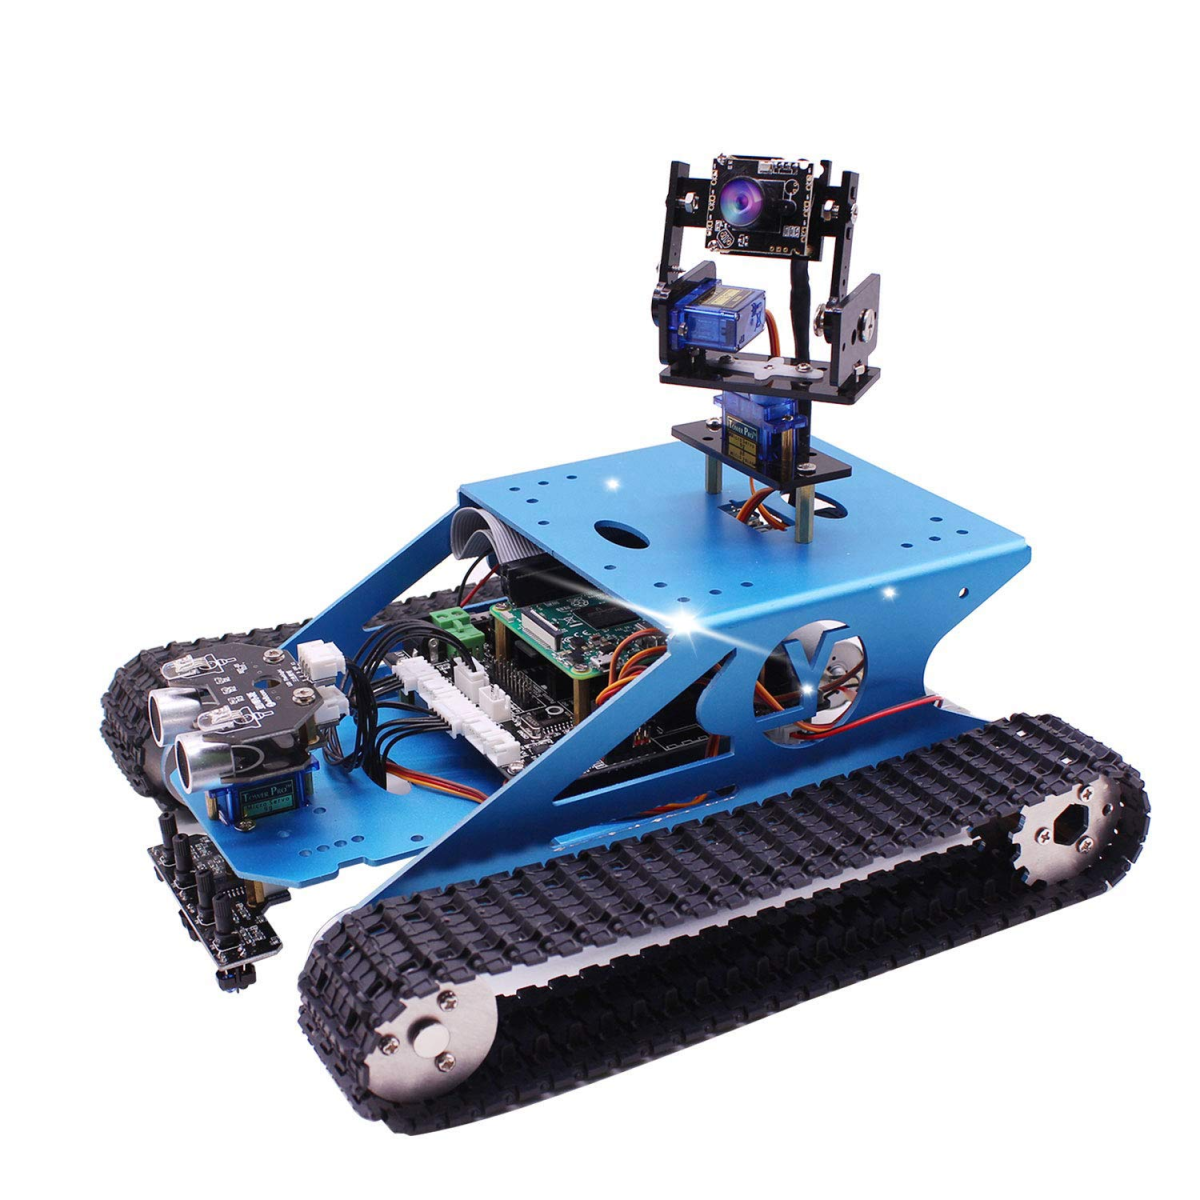 This robot tank is a high quality kit and the perfect platform for adding your own creativity